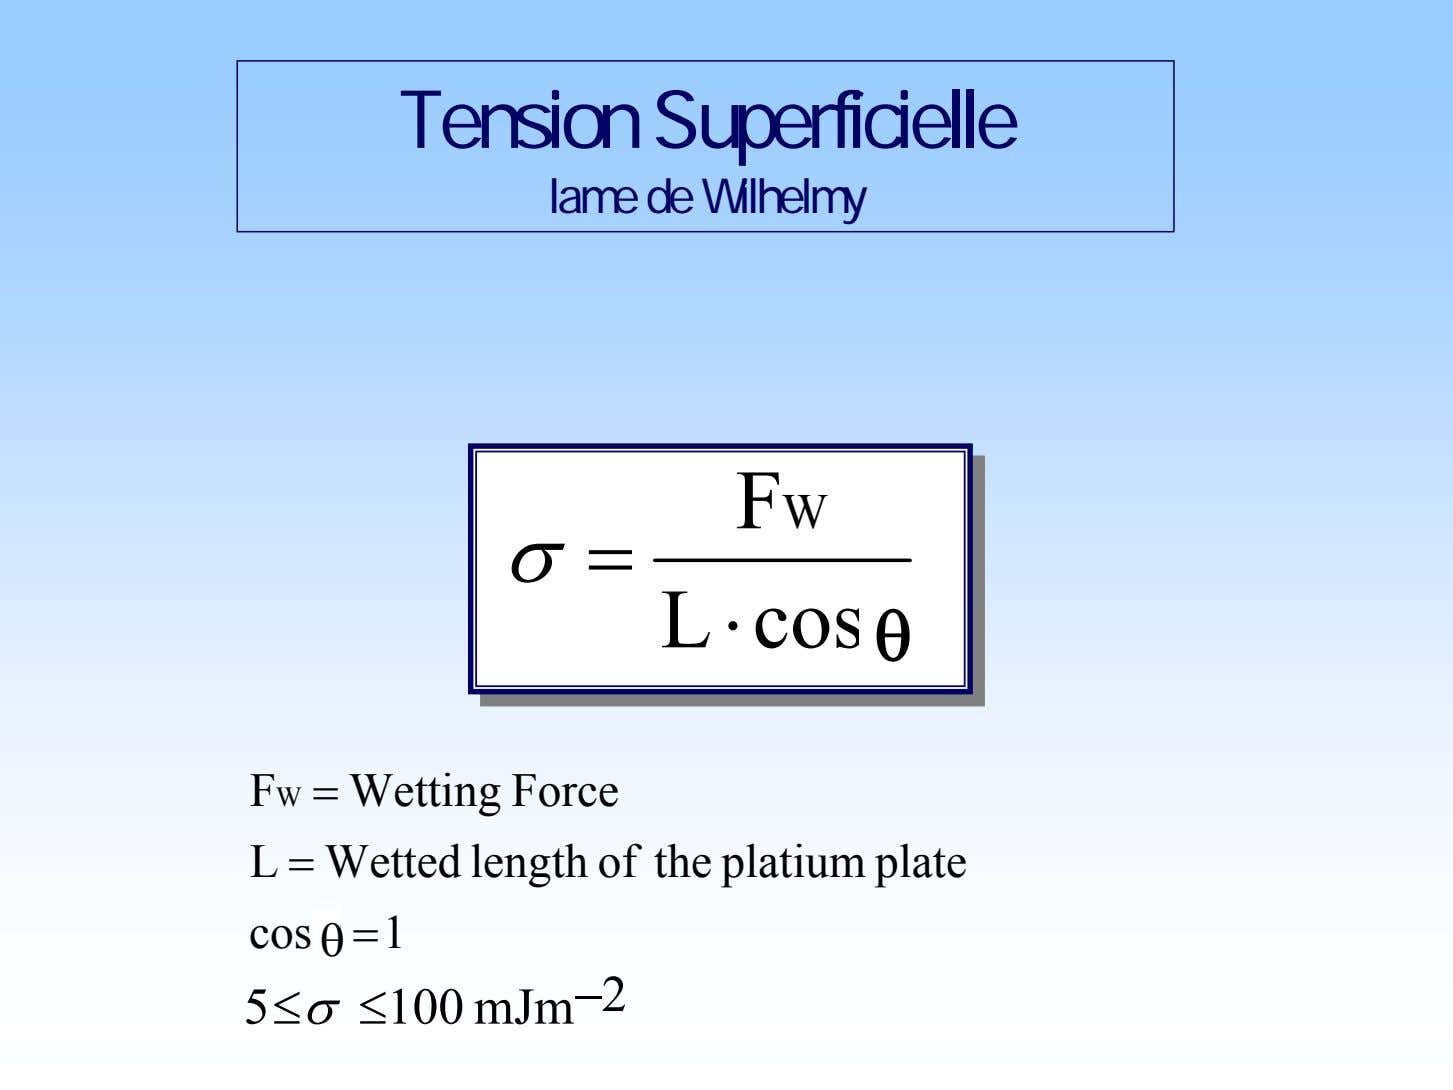 Tension Superficielle lame de Wilhelmy FW  L cosθ   FW  Wetting Force